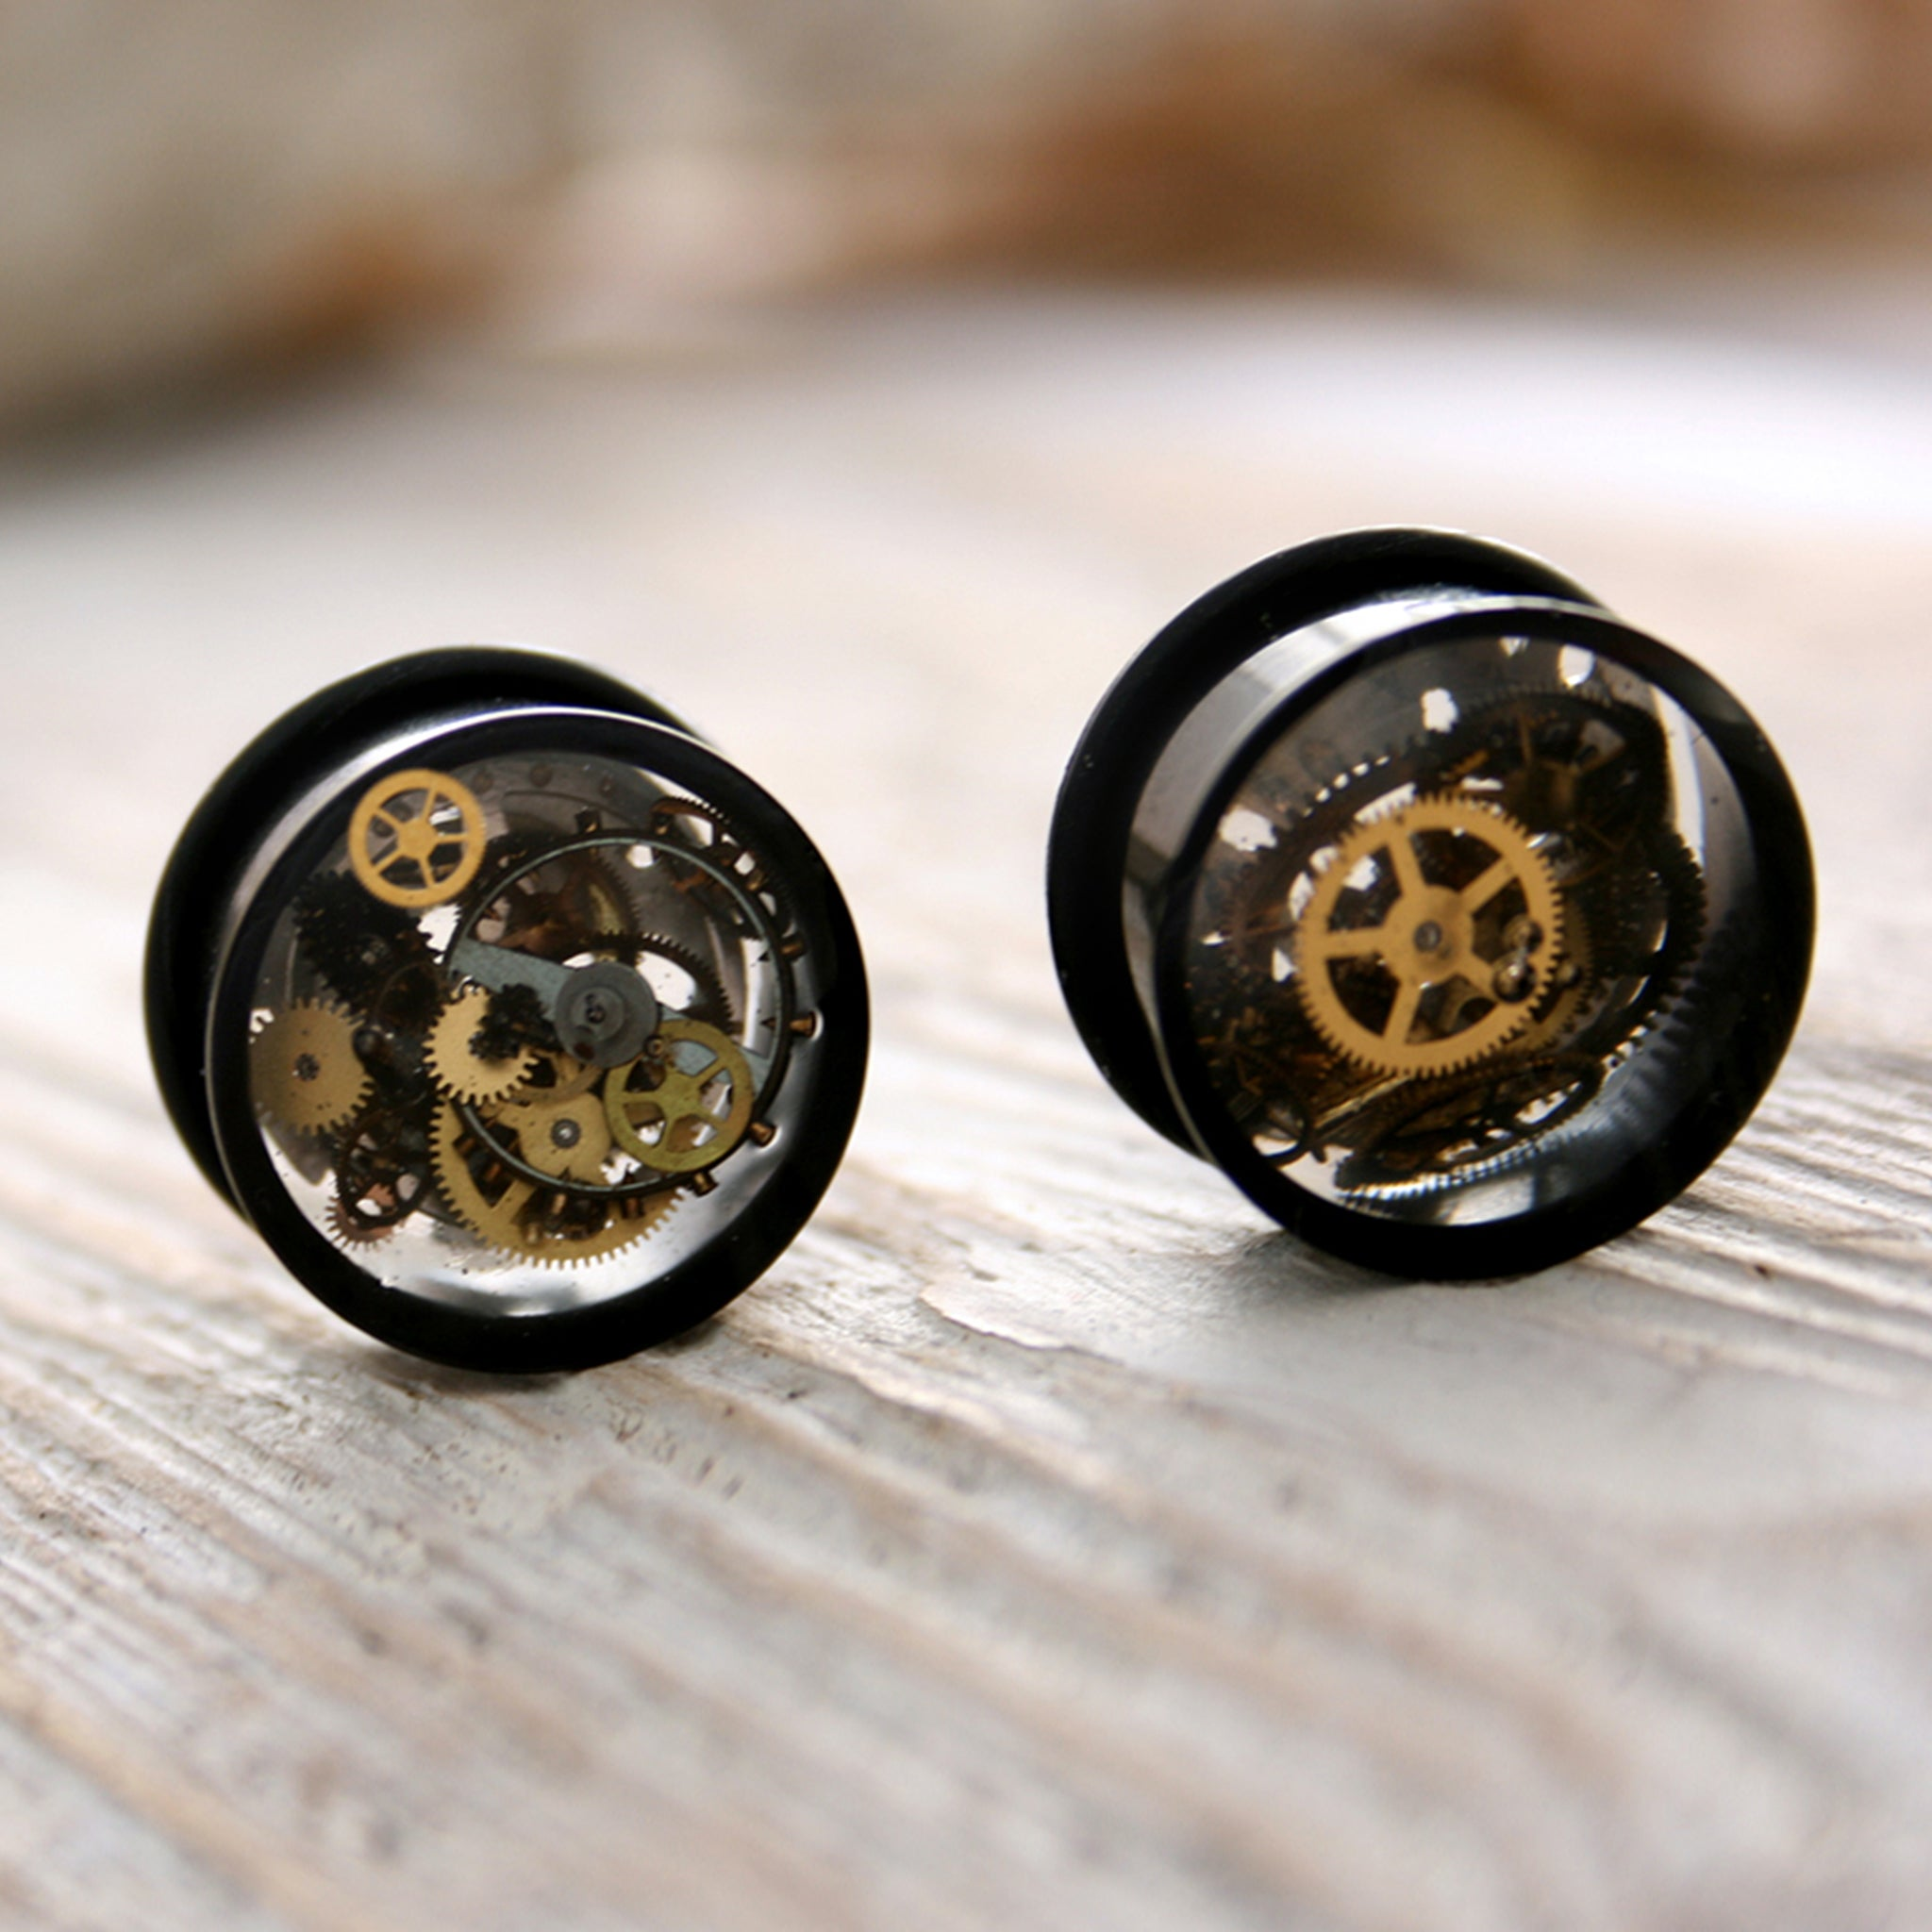 16mm ear gauges in steampunk style with silicone o-rings